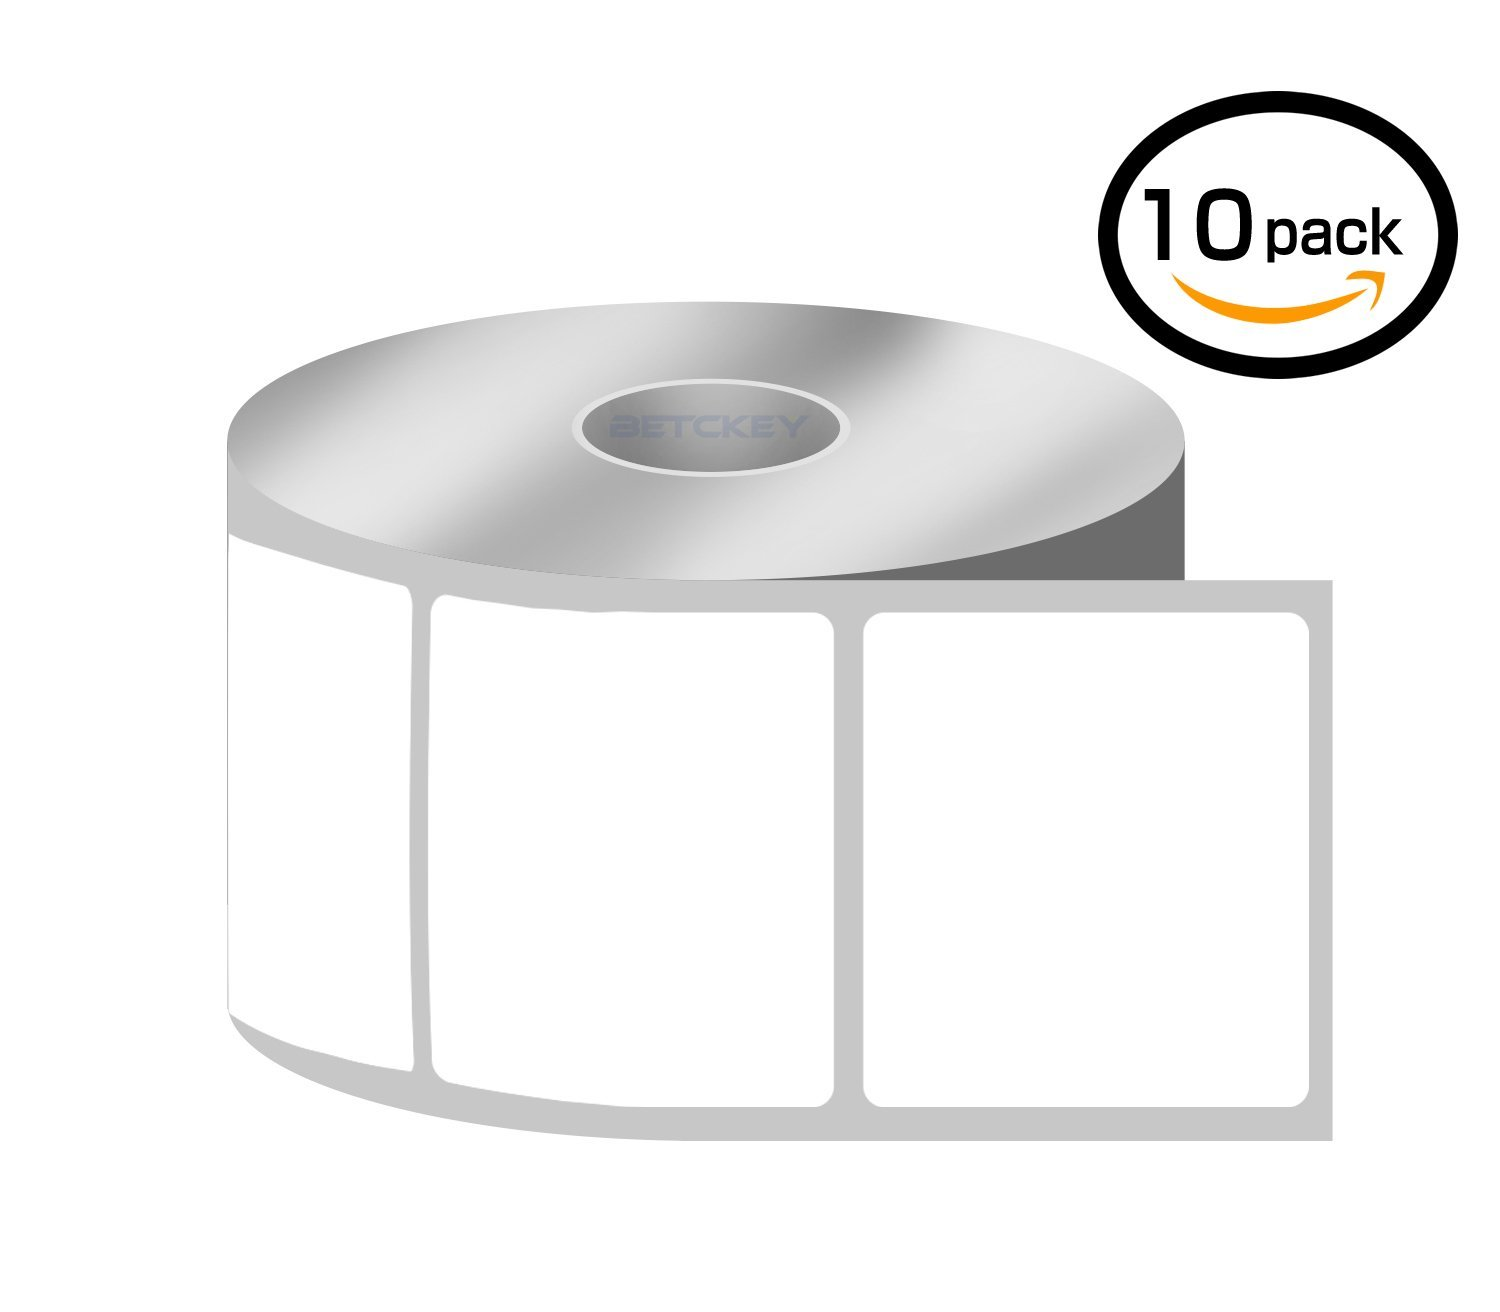 [6 Rolls, 250/Roll] 4 x 6 Direct Thermal Zebra/Eltron Compatible Labels - Premium Resolution & Adhesive BETCKEY